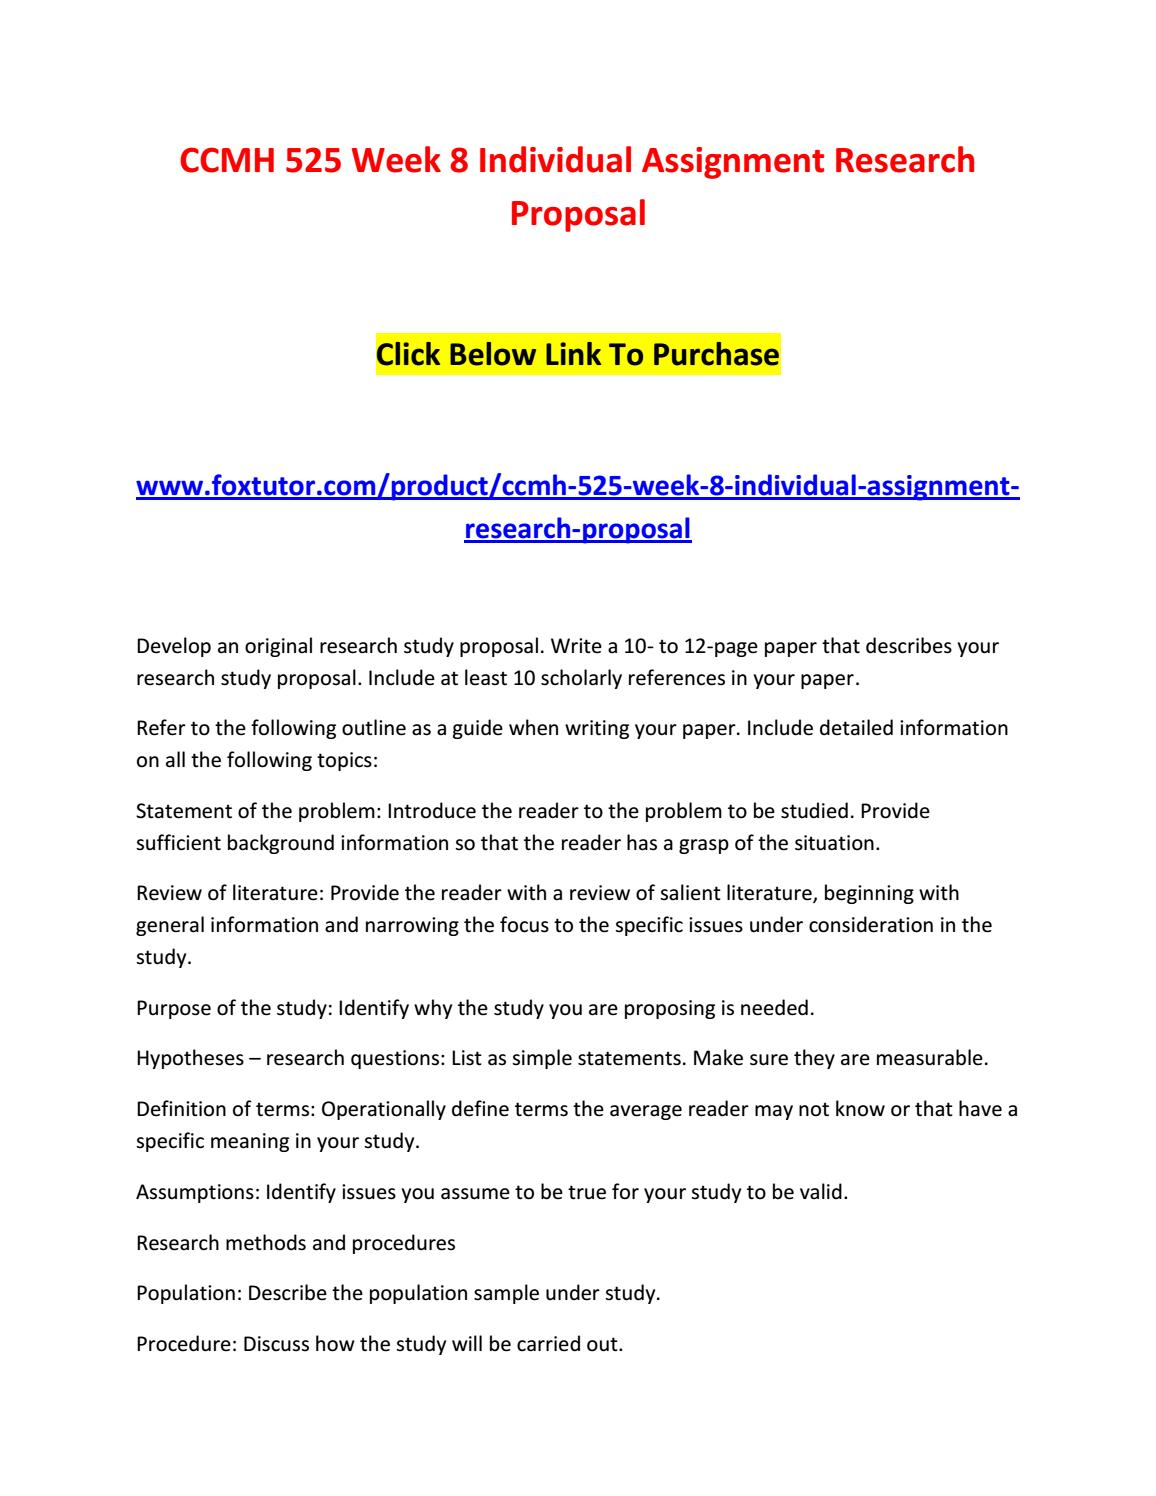 Ccmh 525 Week 8 Individual Assignment Research Proposal 2 By